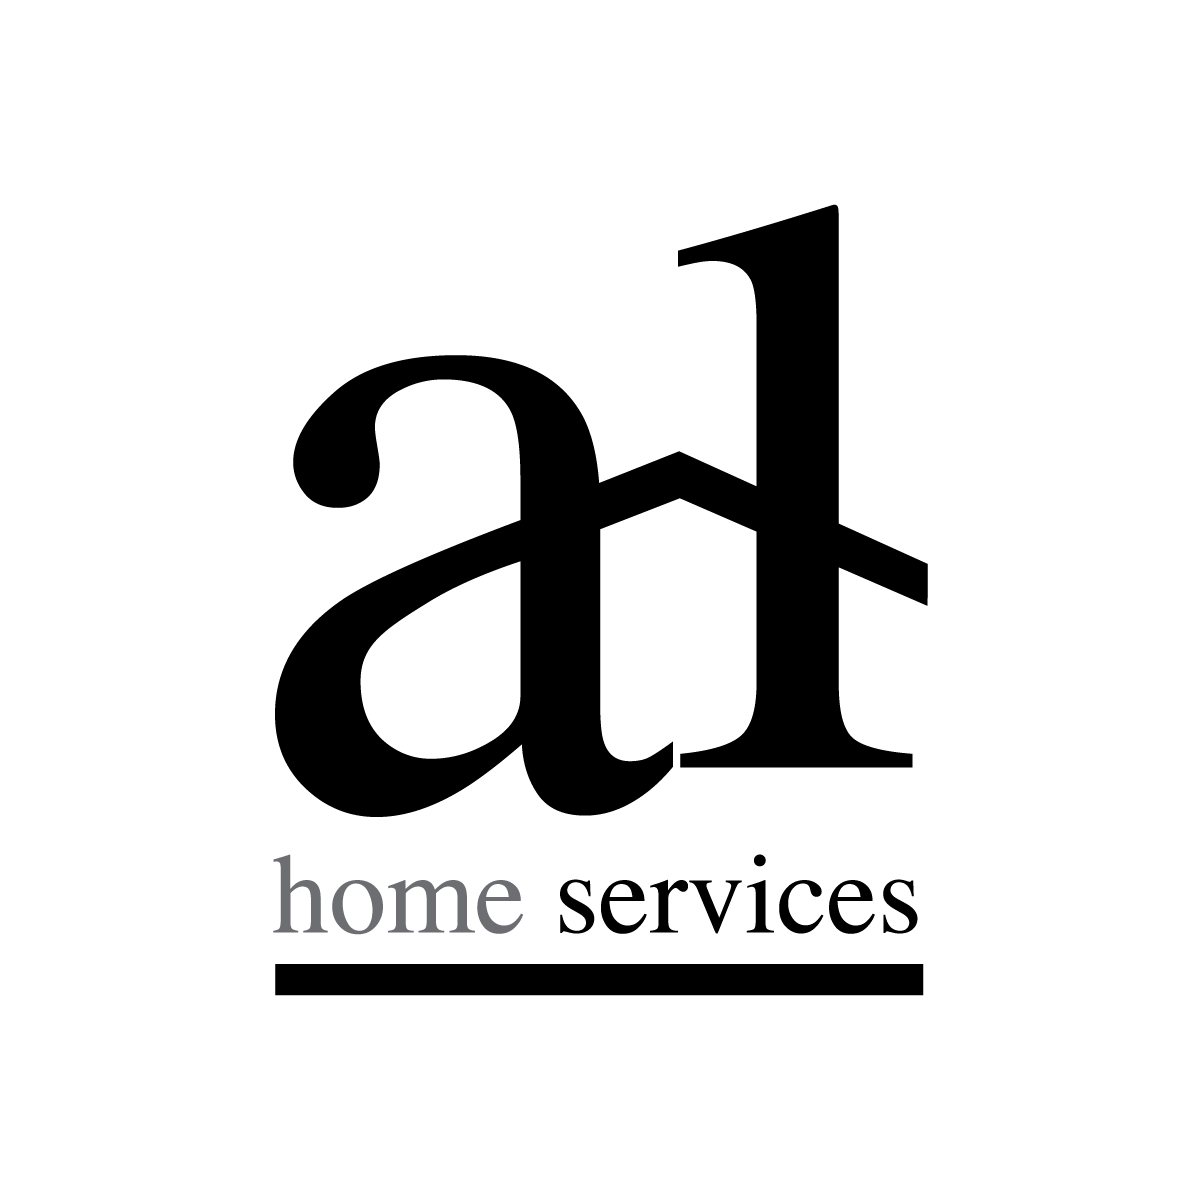 ahl home services logo